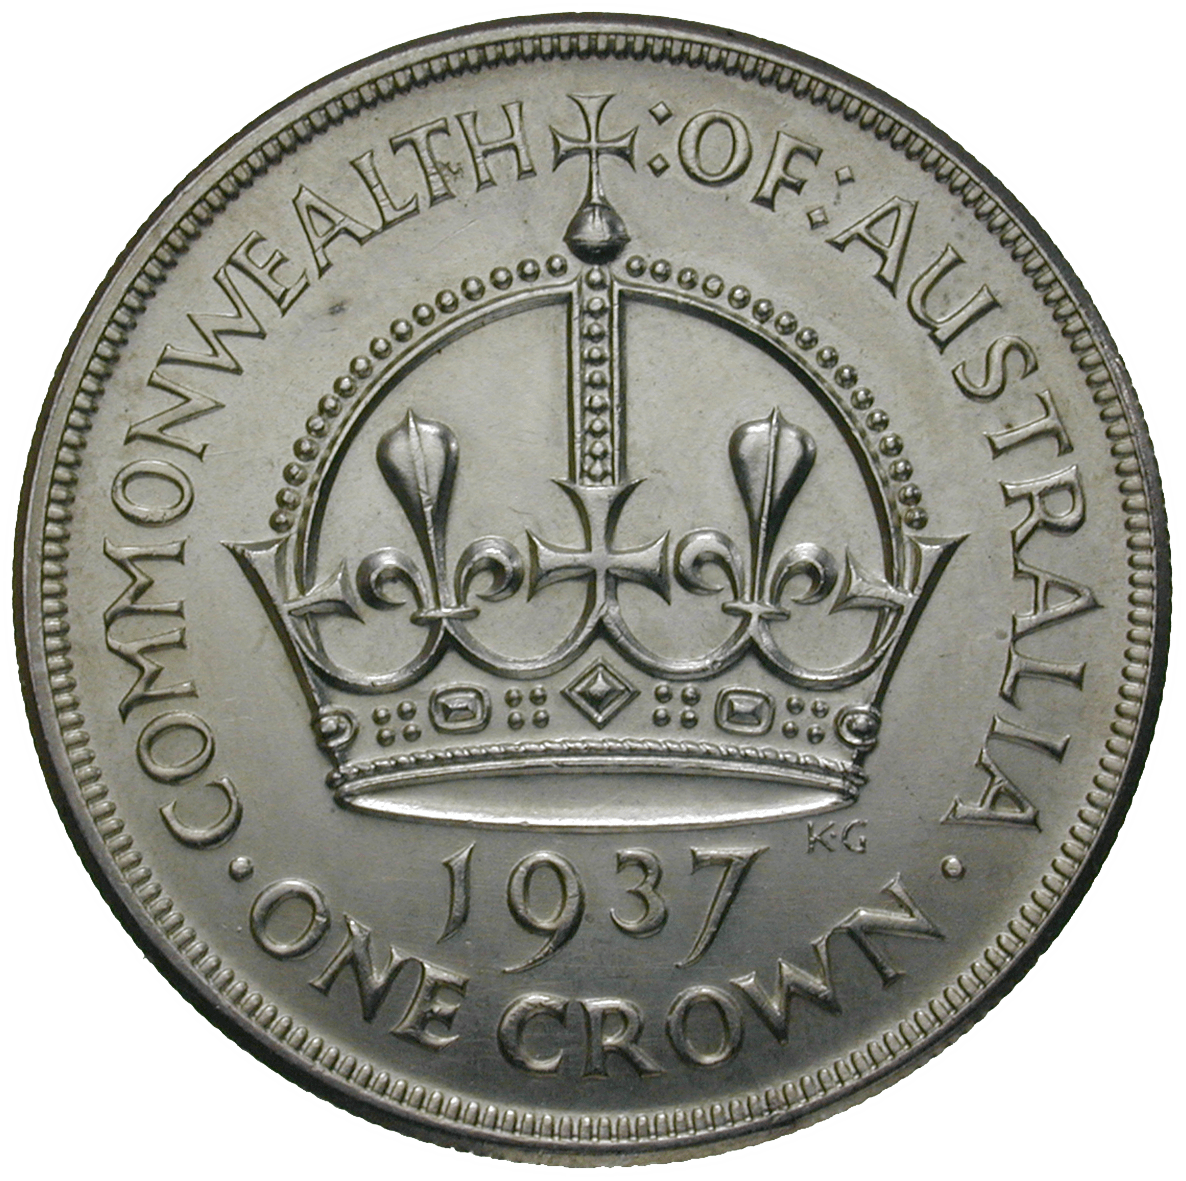 United Kingom of Great Britain for Australia, George VI, 1 Crown 1937 (reverse)